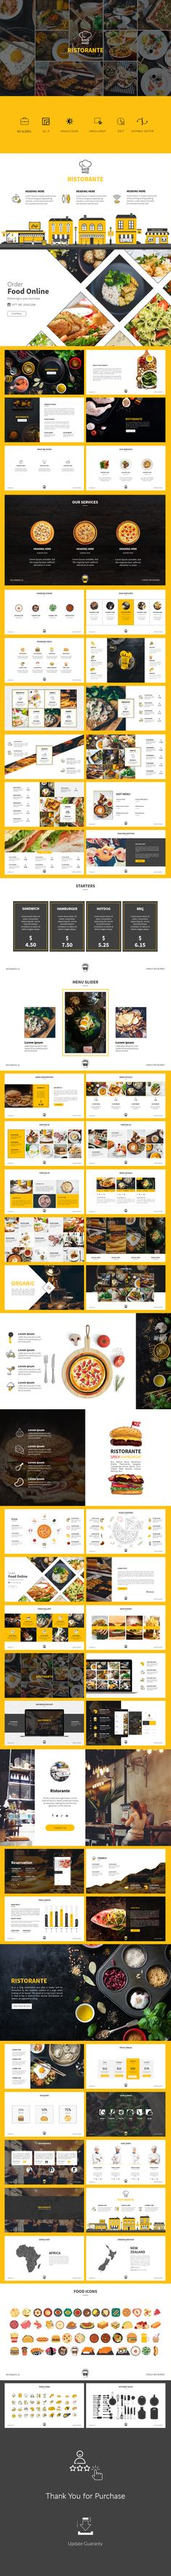 Ristorante - PowerPoint Presentation Template - 80+ Unique Custom Slides